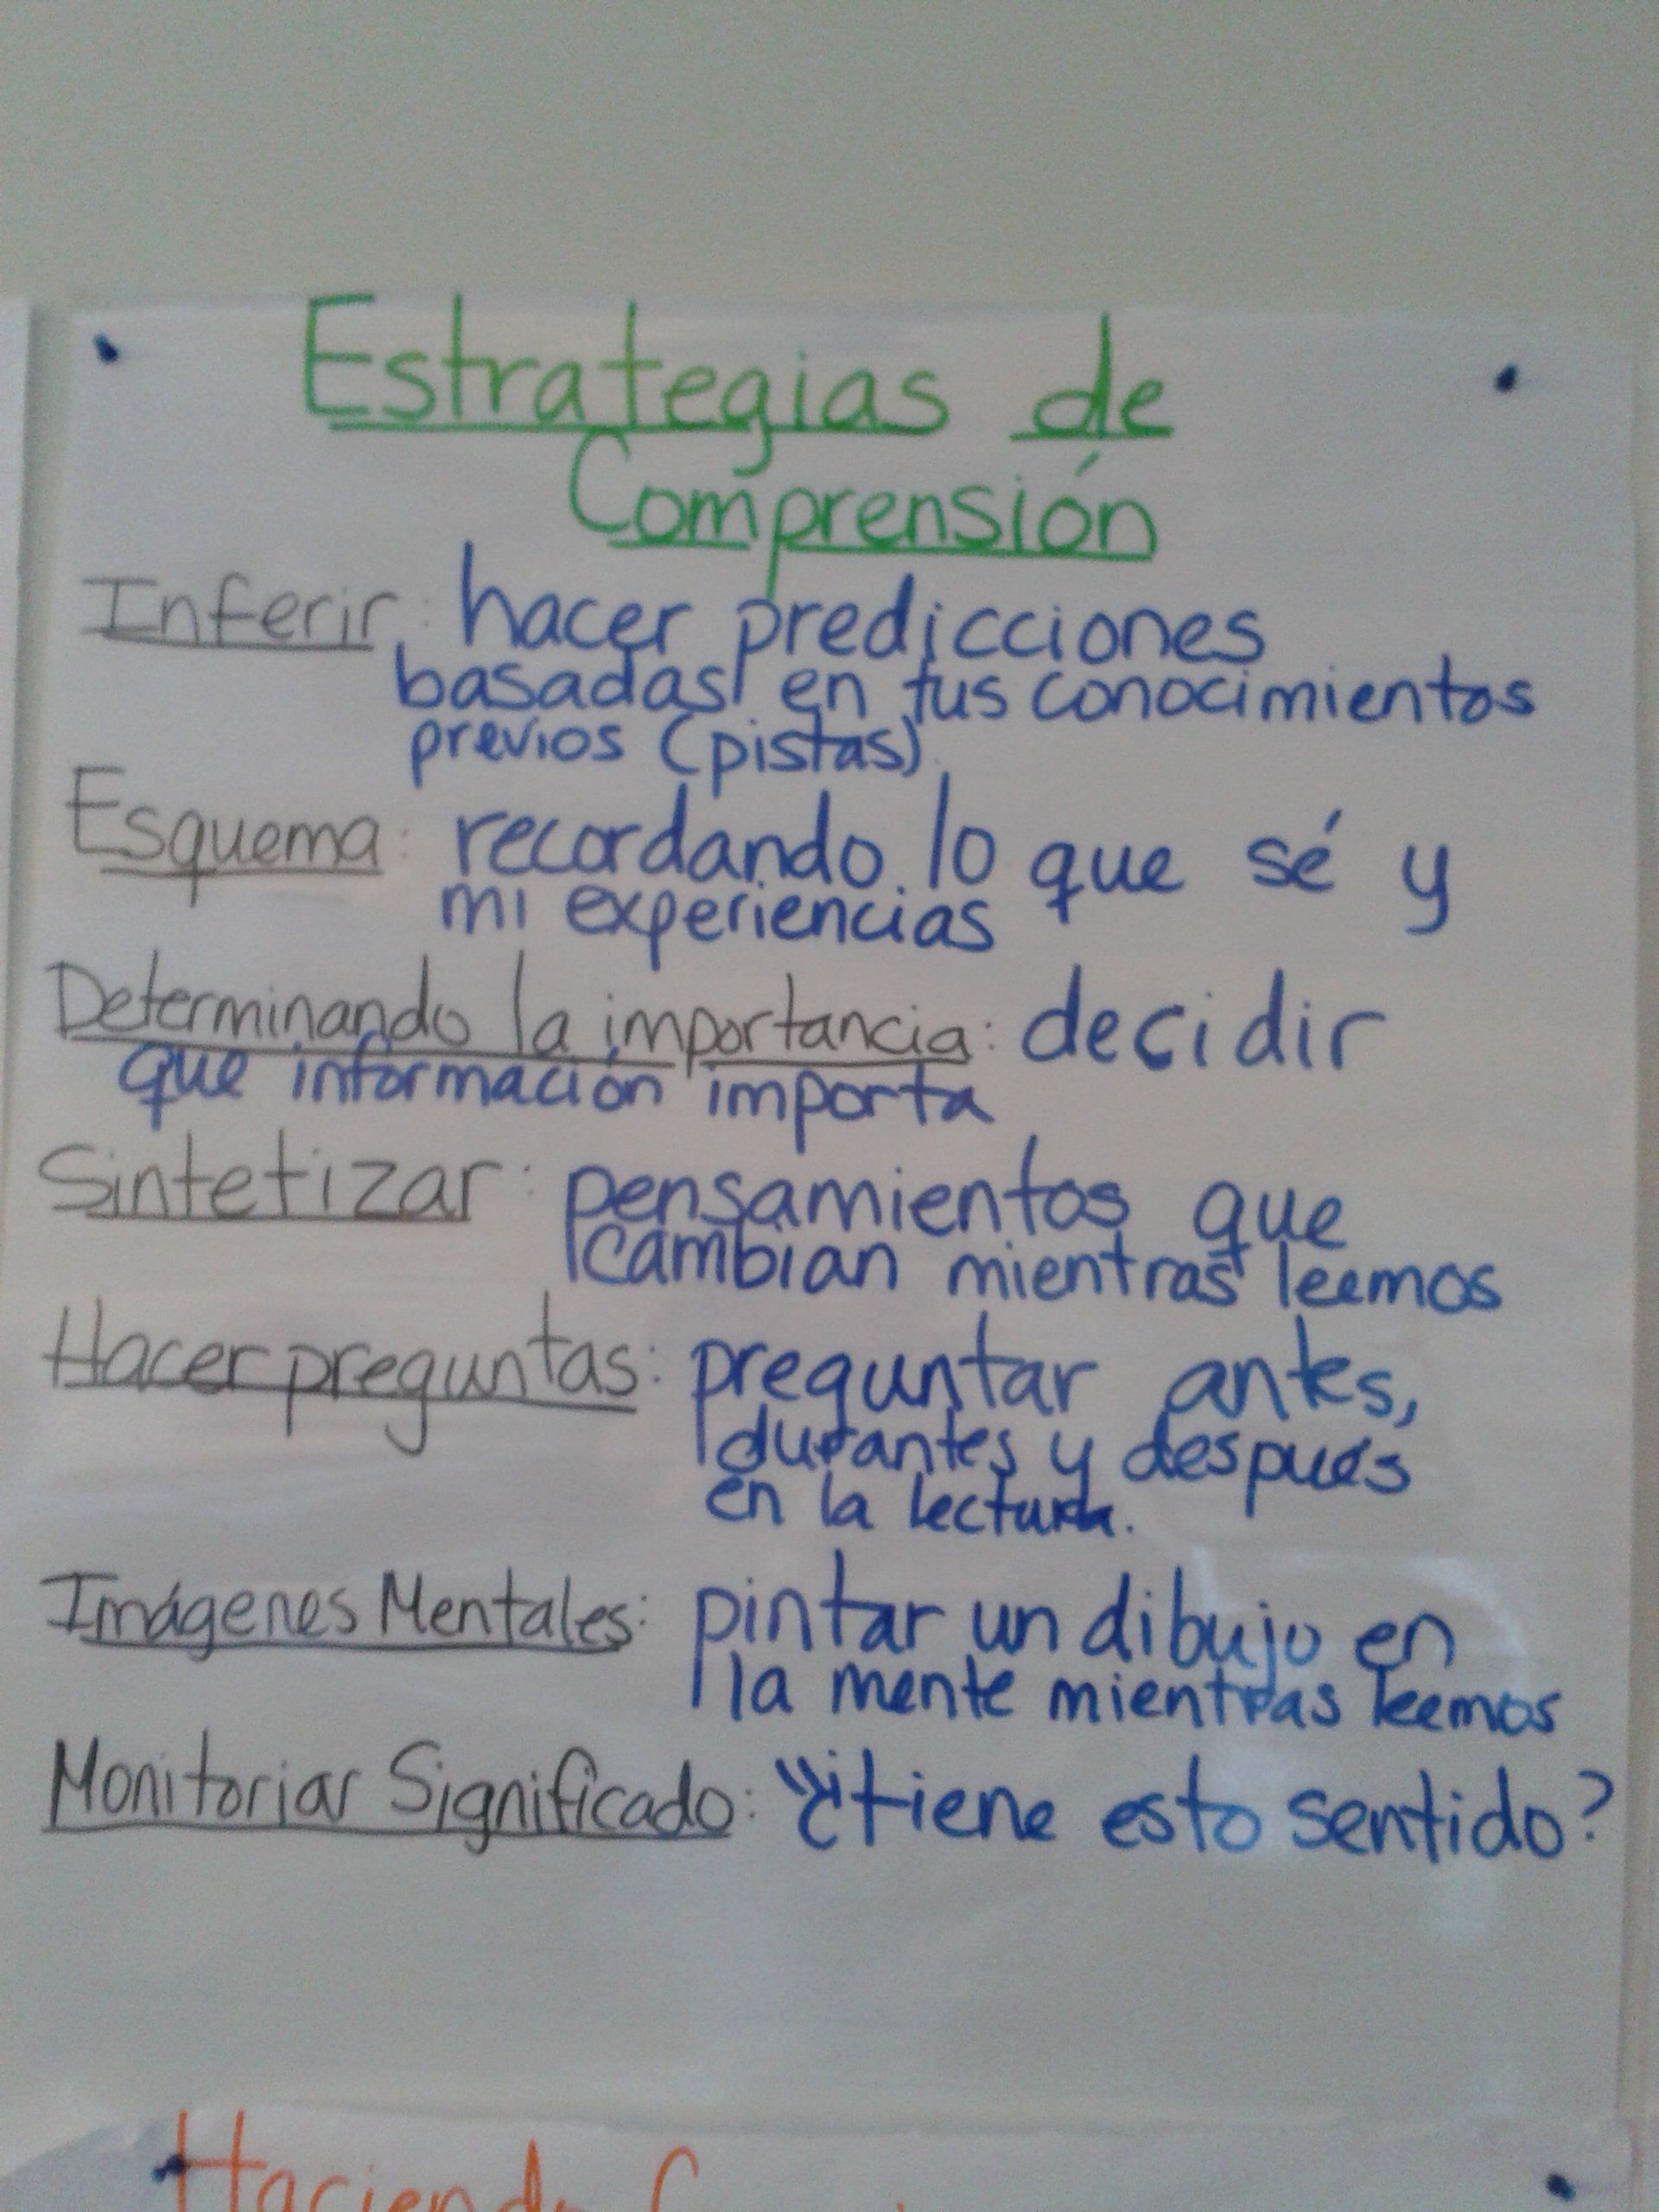 comprehension strategies list in spanish comprehension strategies comprehension strategies. Black Bedroom Furniture Sets. Home Design Ideas